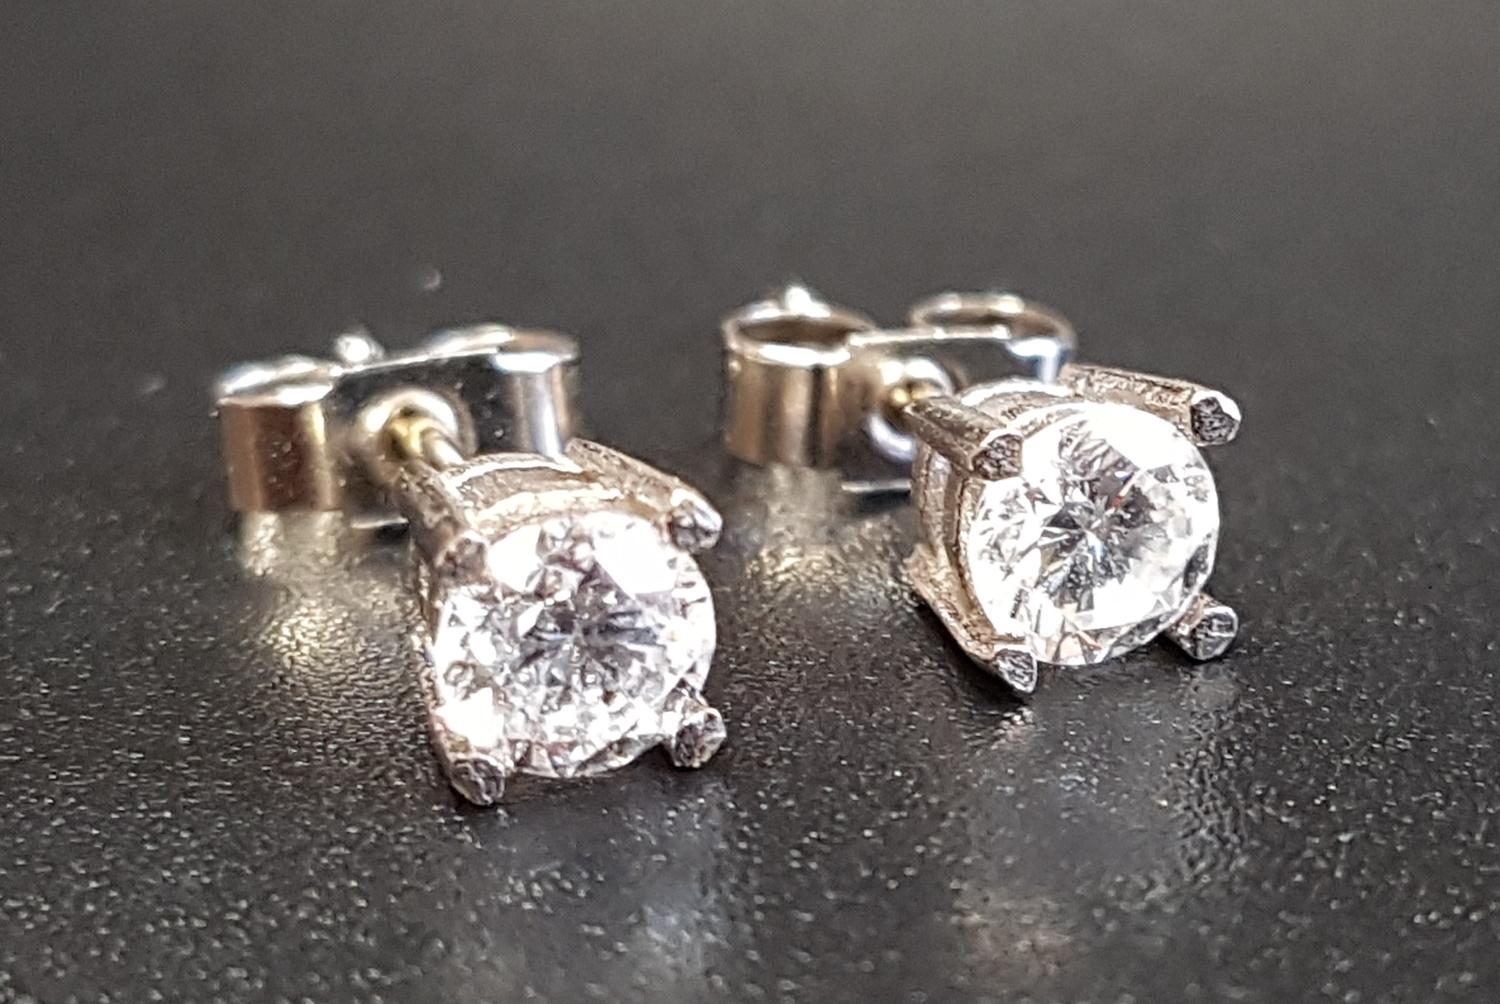 Lot 39 - PAIR OF DIAMOND STUD EARRINGS the round brilliant cut diamonds totalling approximately 0.7cts, in